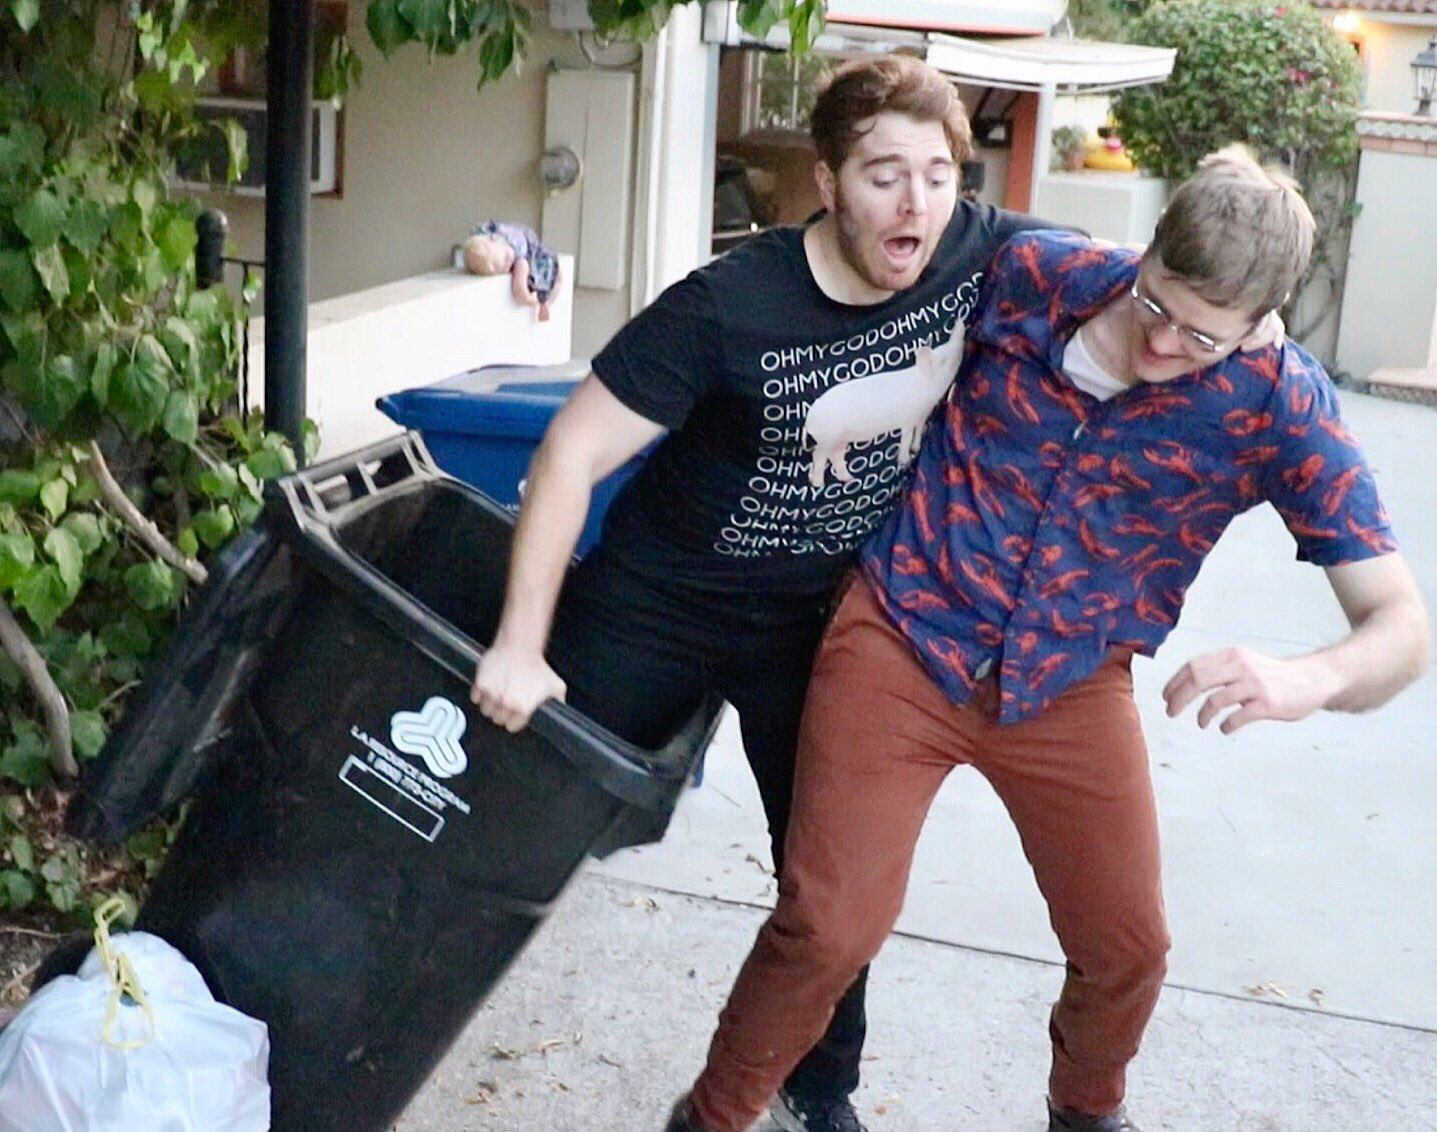 Get a friend who will help you out of the trash ❤️ https://t.co/j1rhBADjZ1